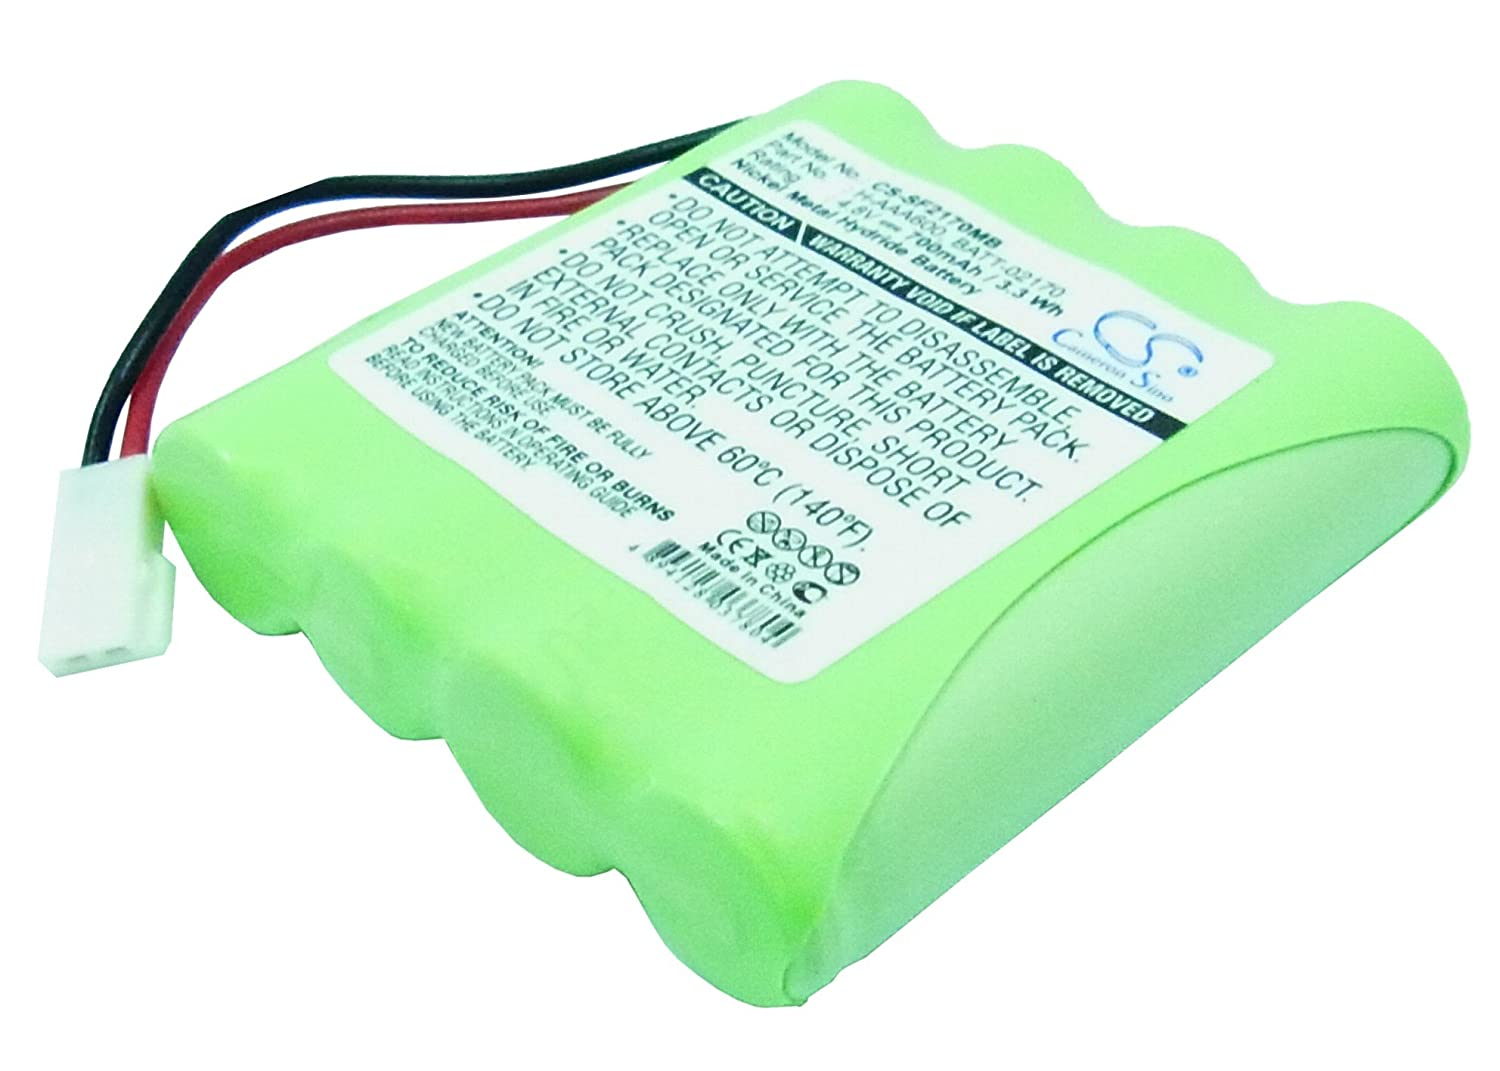 CS-SF2170MB Bater/ía 700mAh Compatible con Philips Infant 02174 486//91, 02170 Video Monitor H-AAA600 Infant 02320, Summer Baby H-AAA700 02320 Video Monitor Infant 02170 02174 Video Monitor